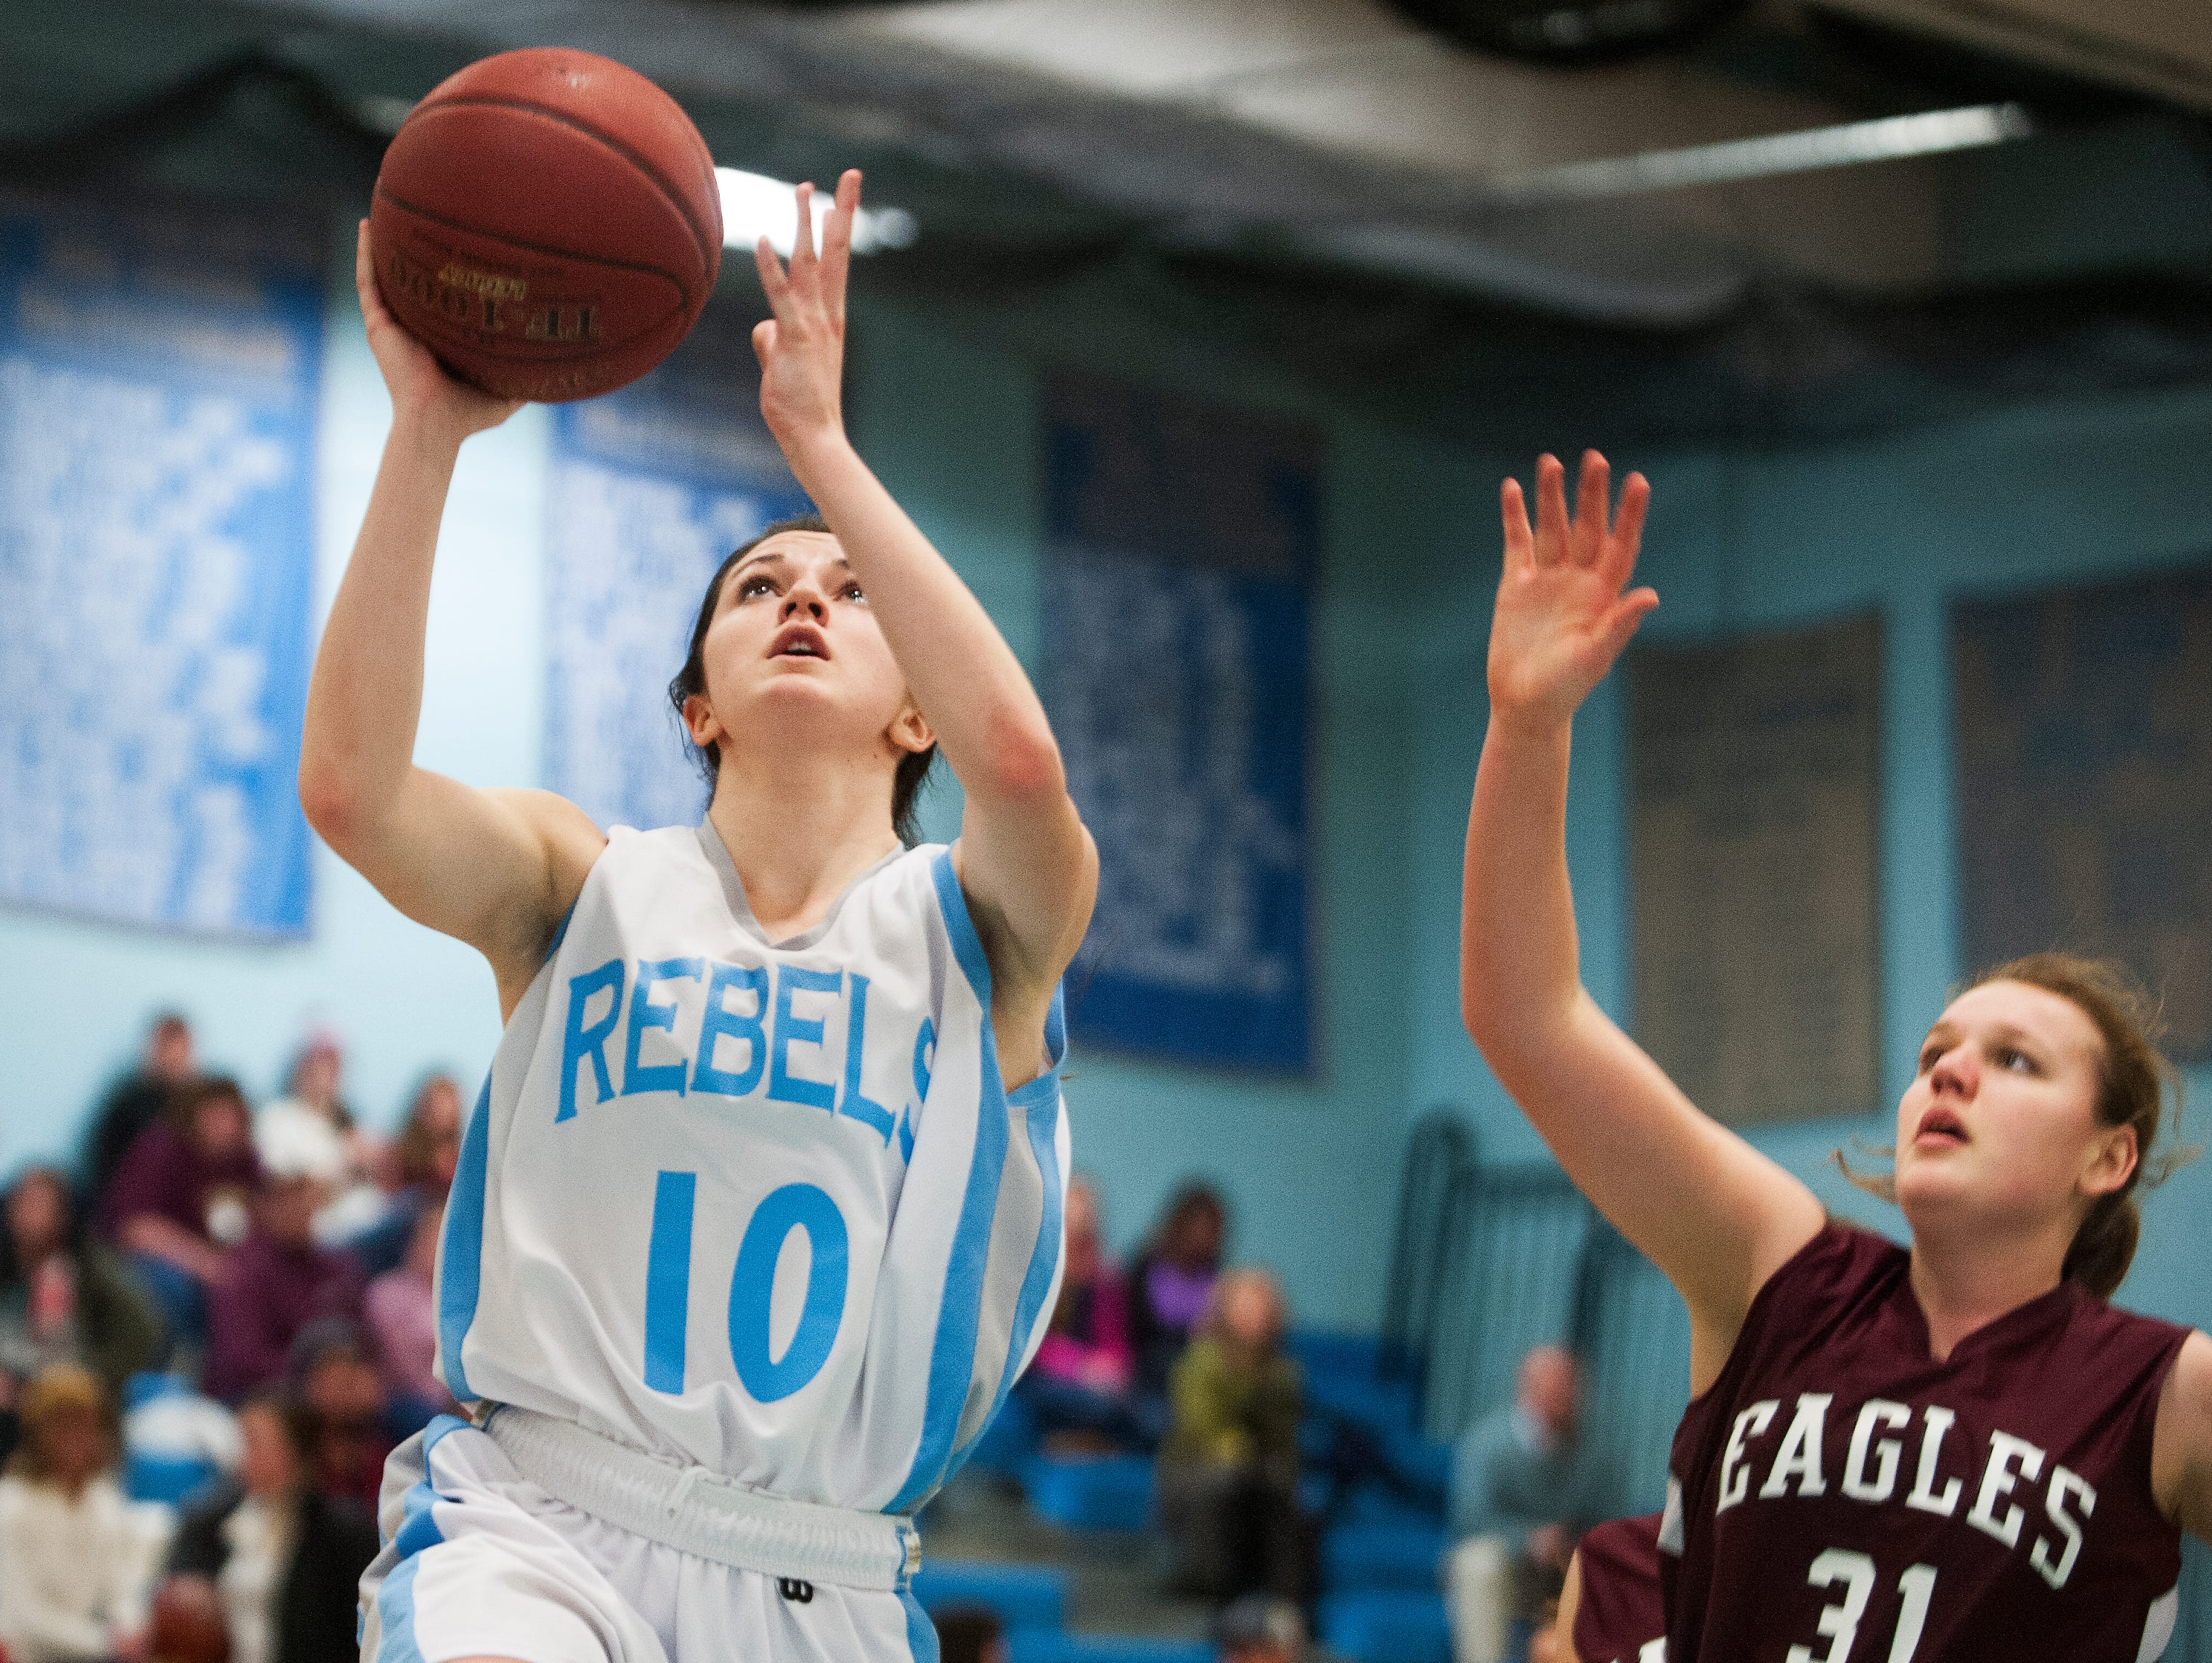 South Burlington's Kayla Gilding, left, leaps past Mt. Abraham's Isabel Brennan (31) for a lay up during the girls basketball game.